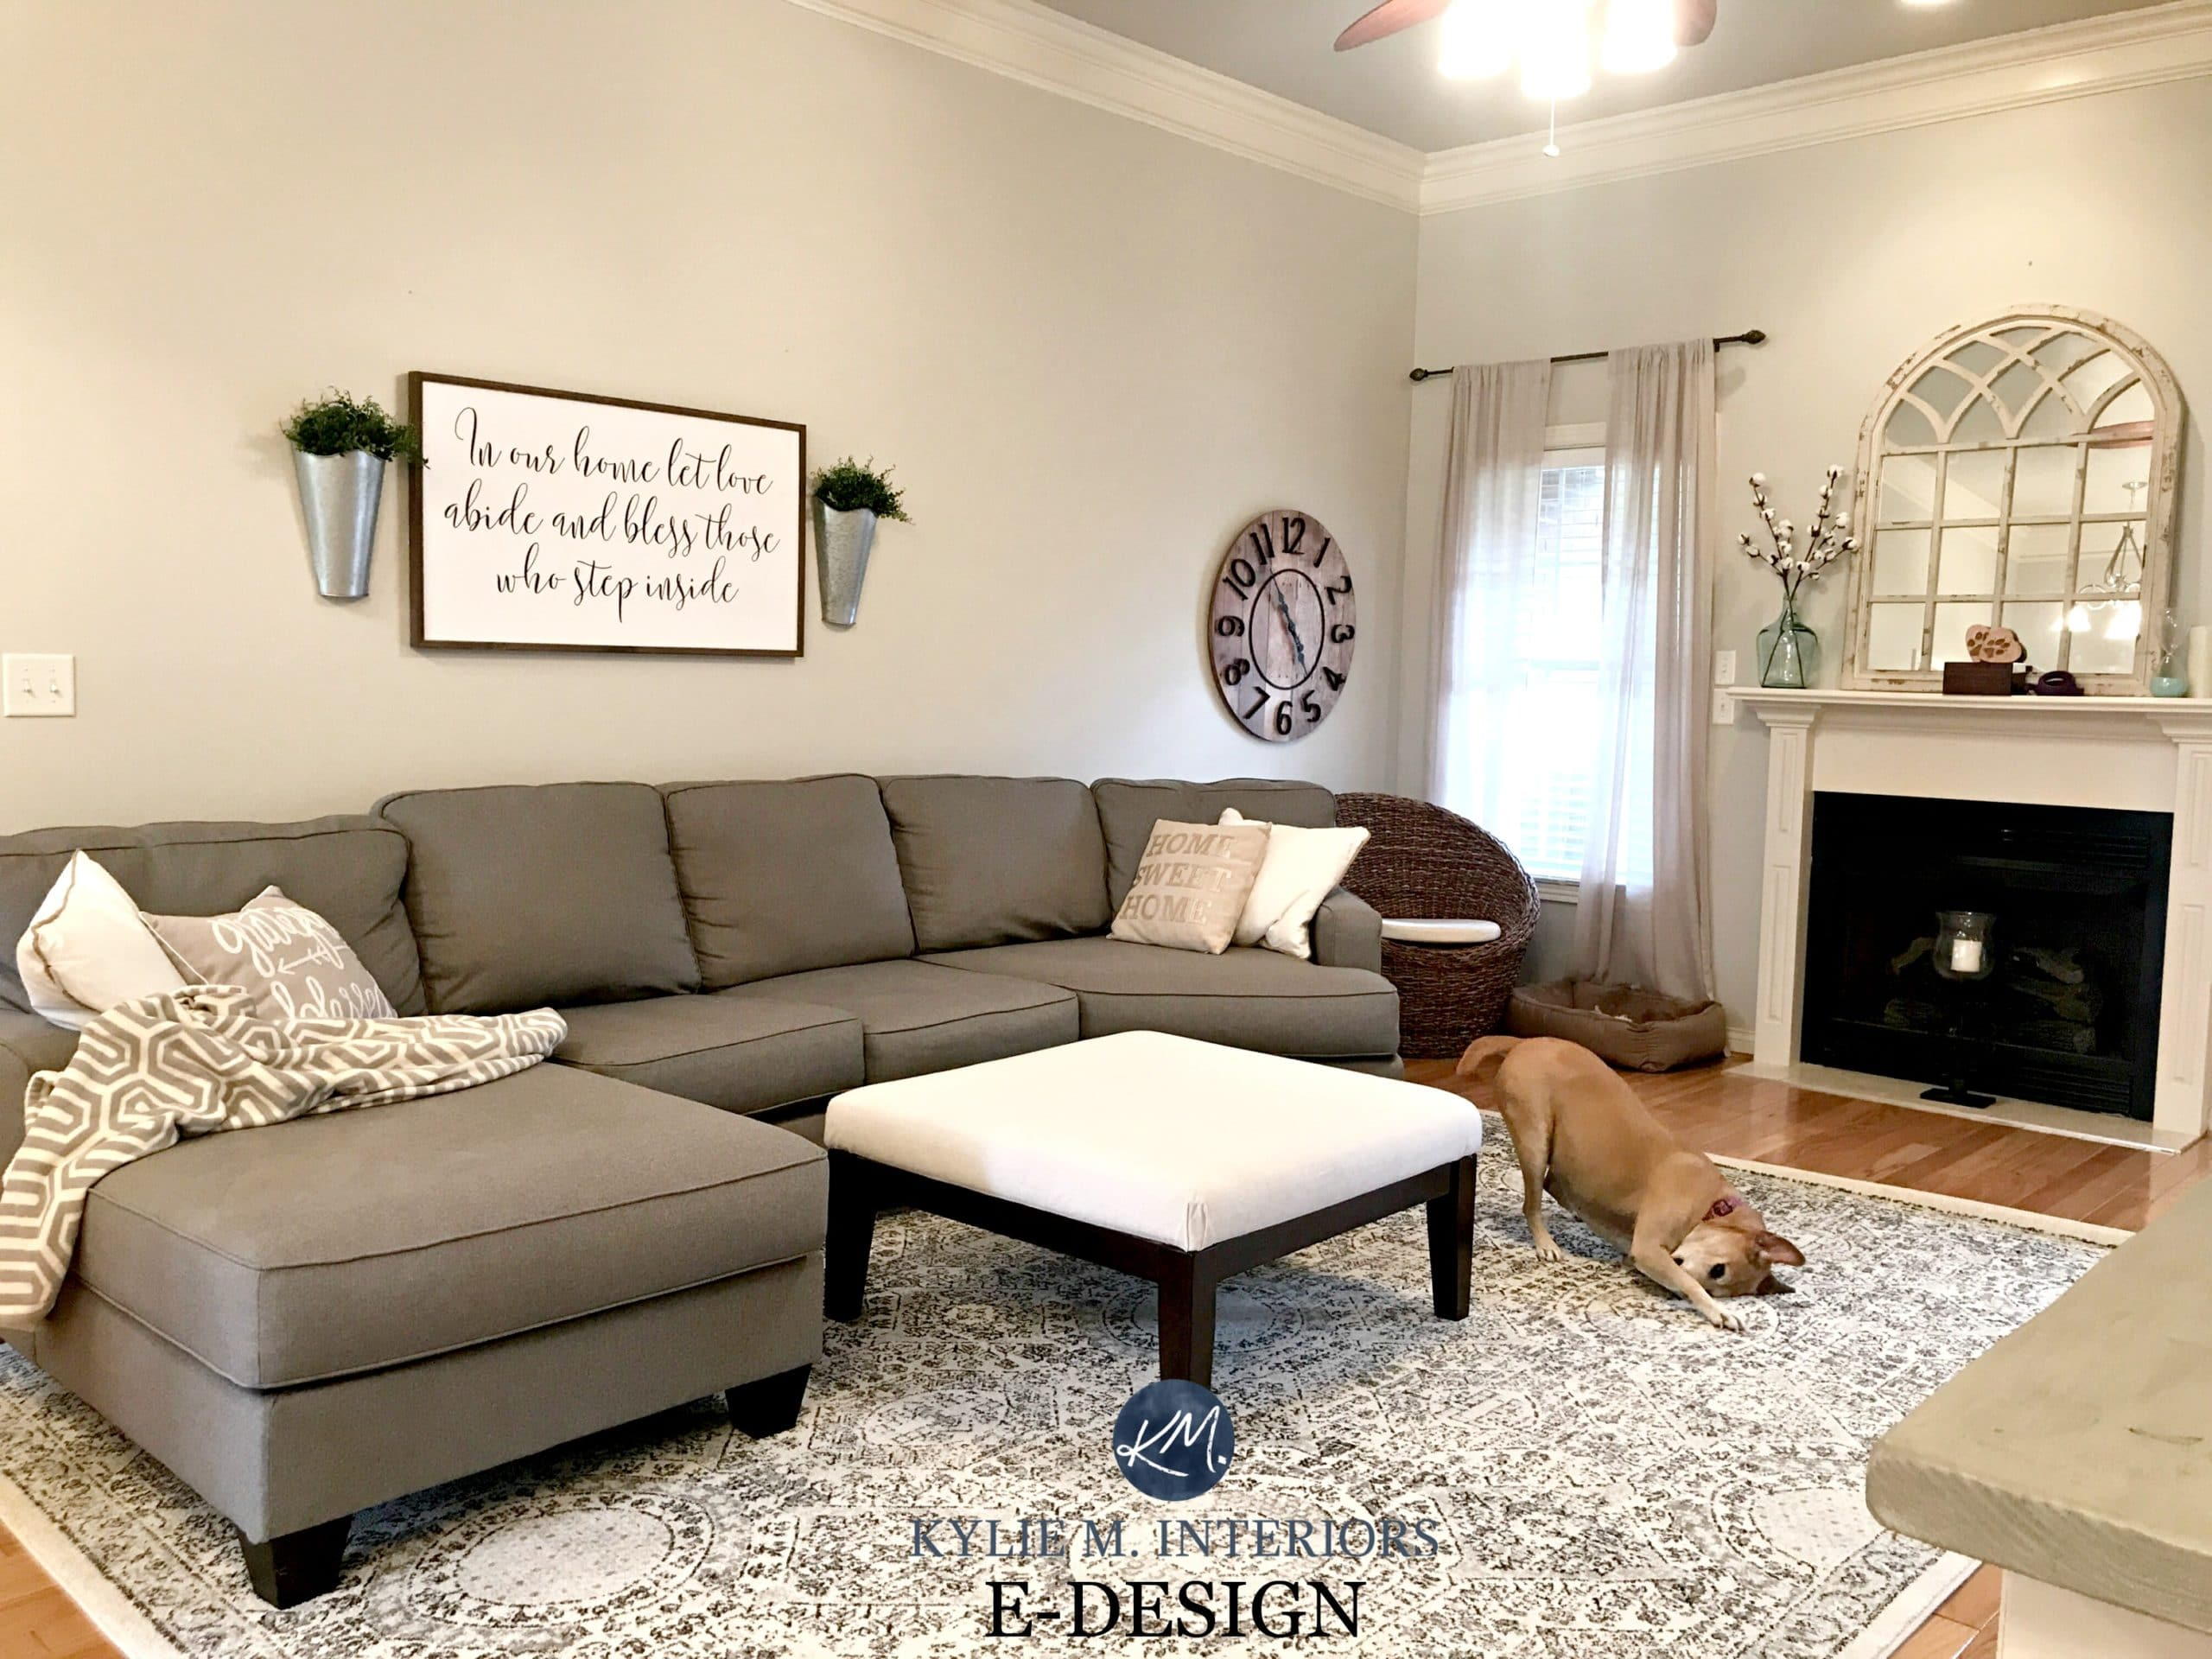 https://www.kylieminteriors.ca/wp-content/uploads/2016/06/Sherwin-Williams-Agreeable-Gray-in-living-room-with-gray-sectional-couch-area-rug-fireplace-mirror.-KYlie-M-E-design-and-Online-Color-consulting.jpg